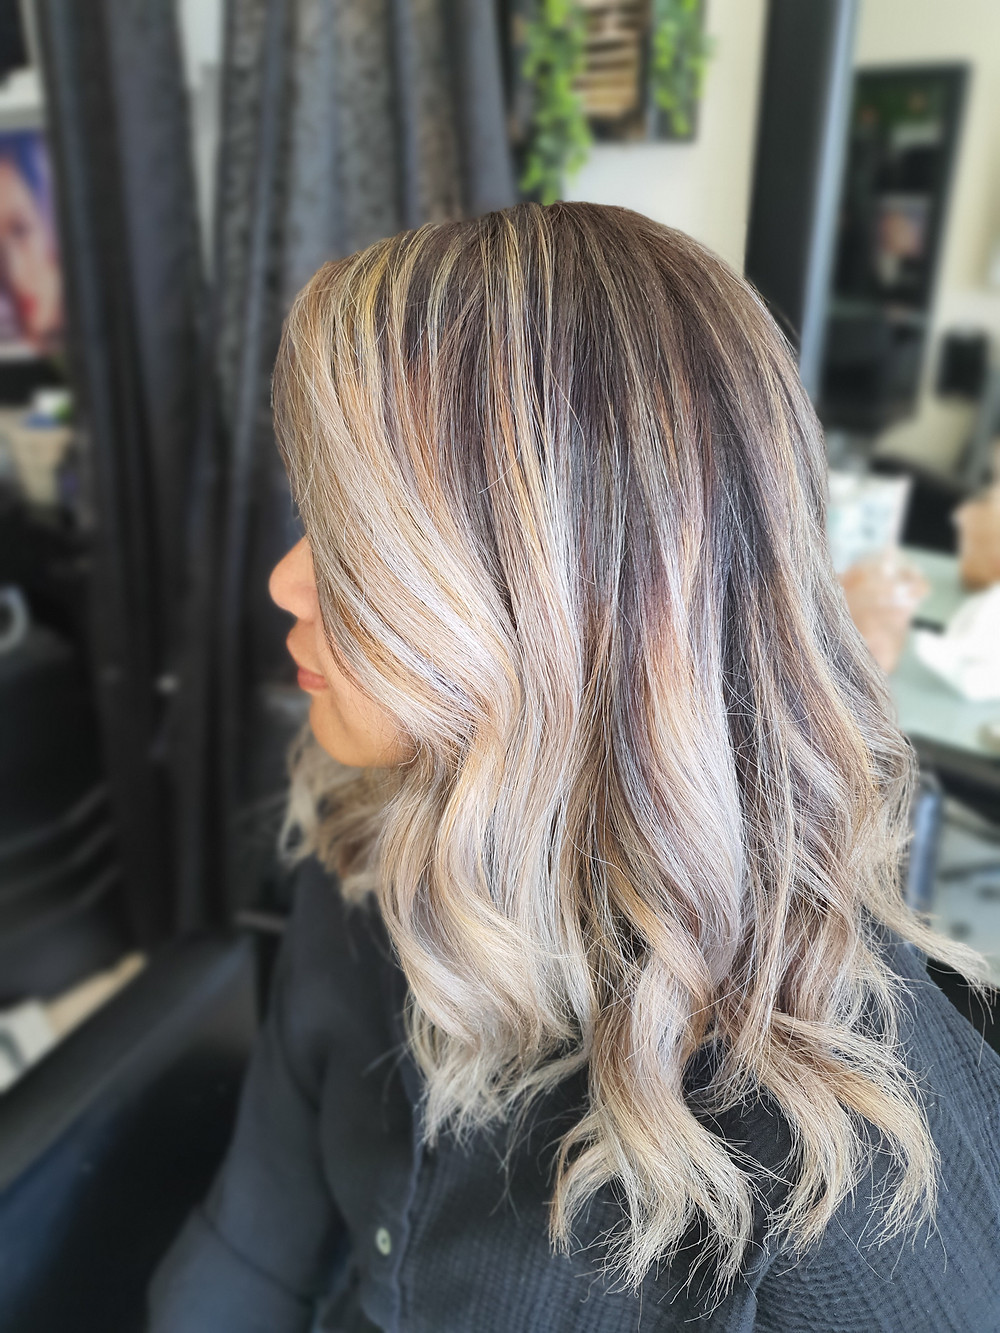 An alternate balayage result using Colour Melt Technique